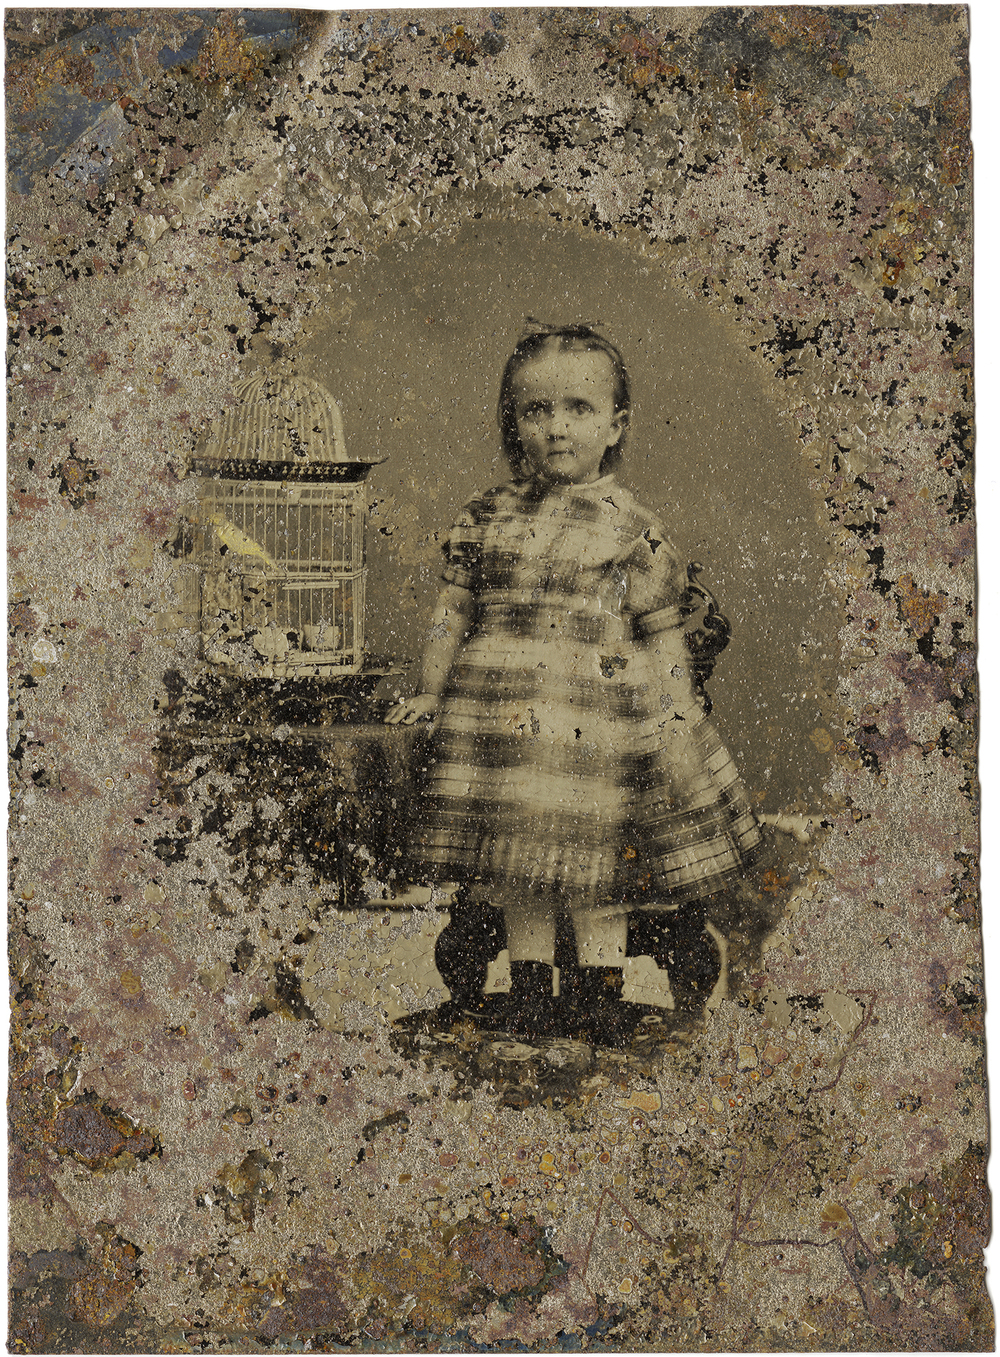 Little Girl with Birdcage, 2011 - LR12123